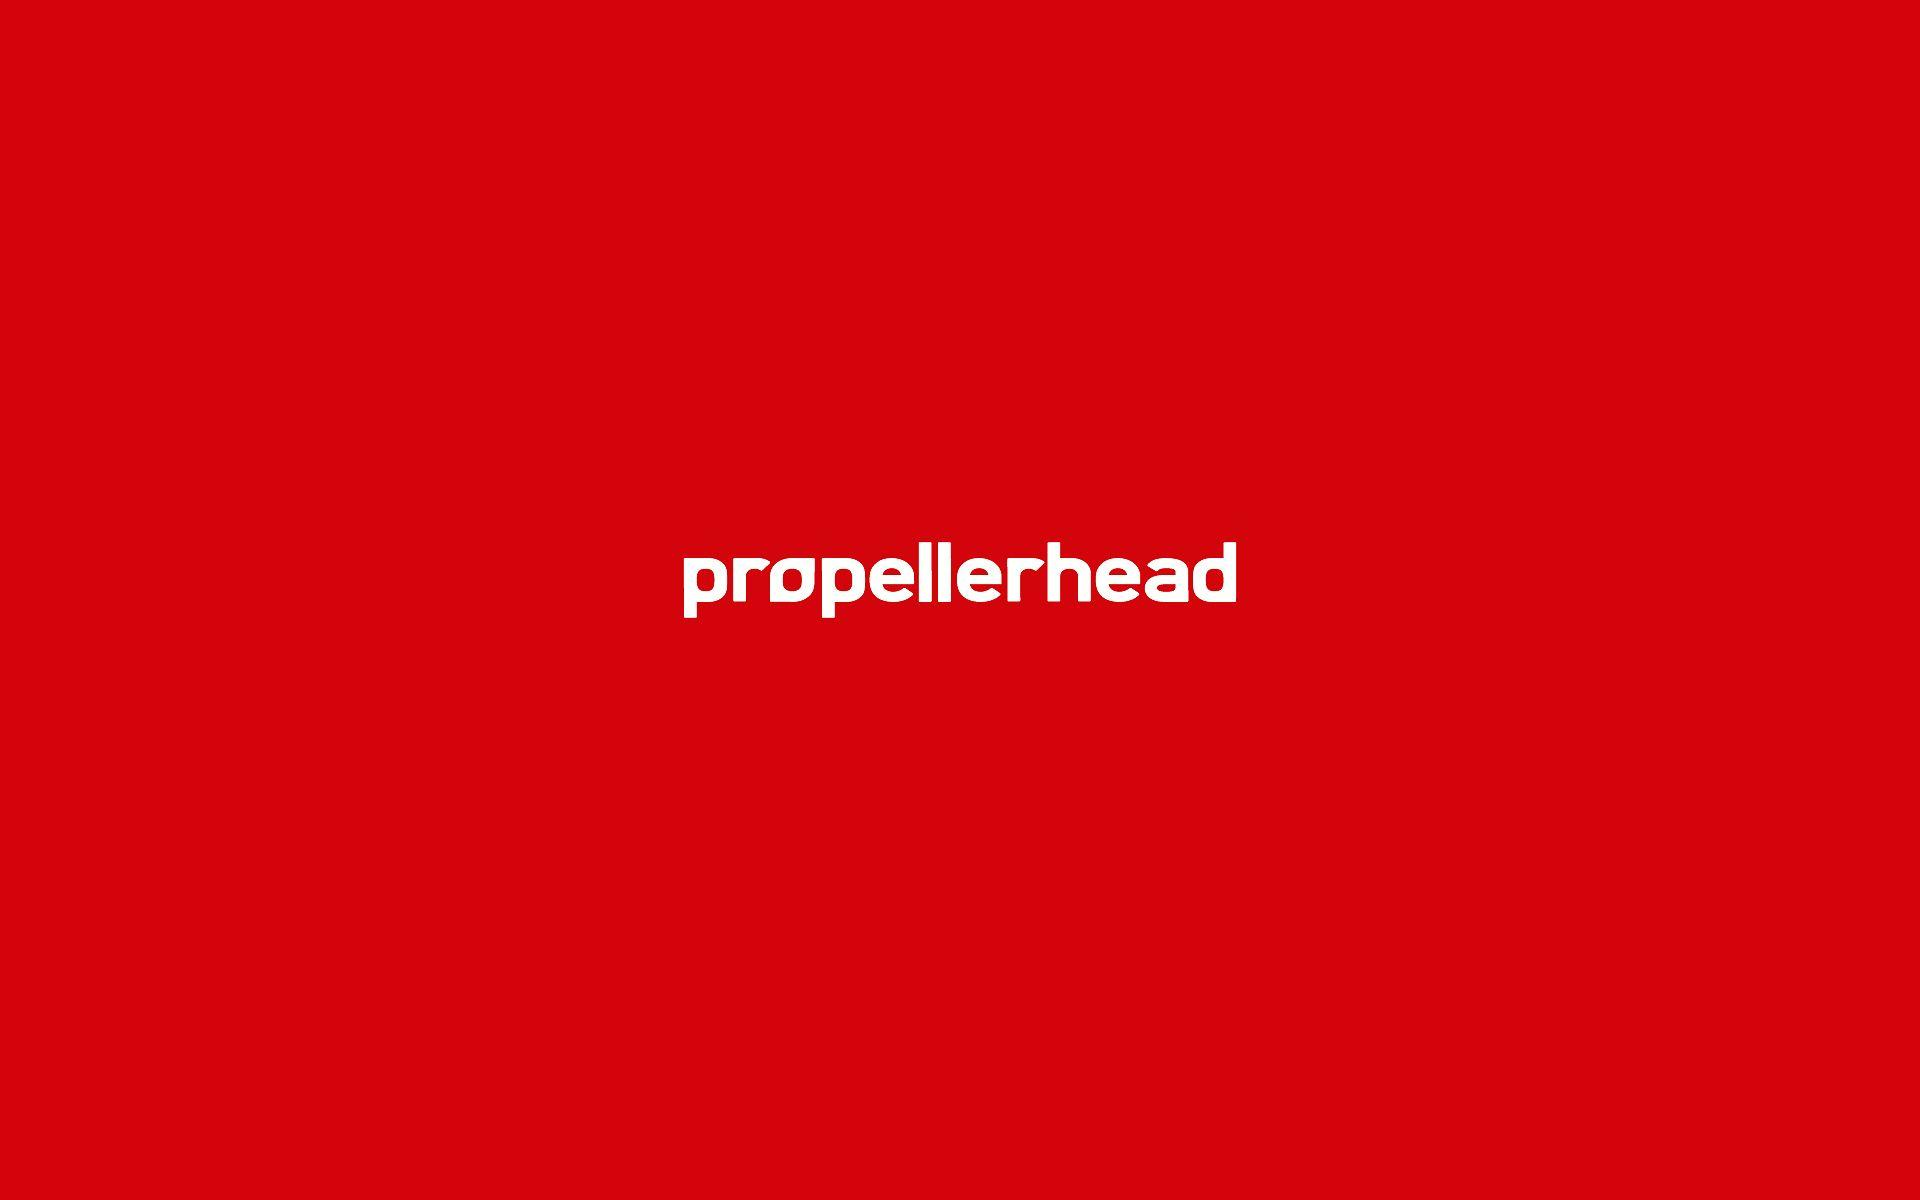 Propellerhead - Kreativ Sound | Page 2